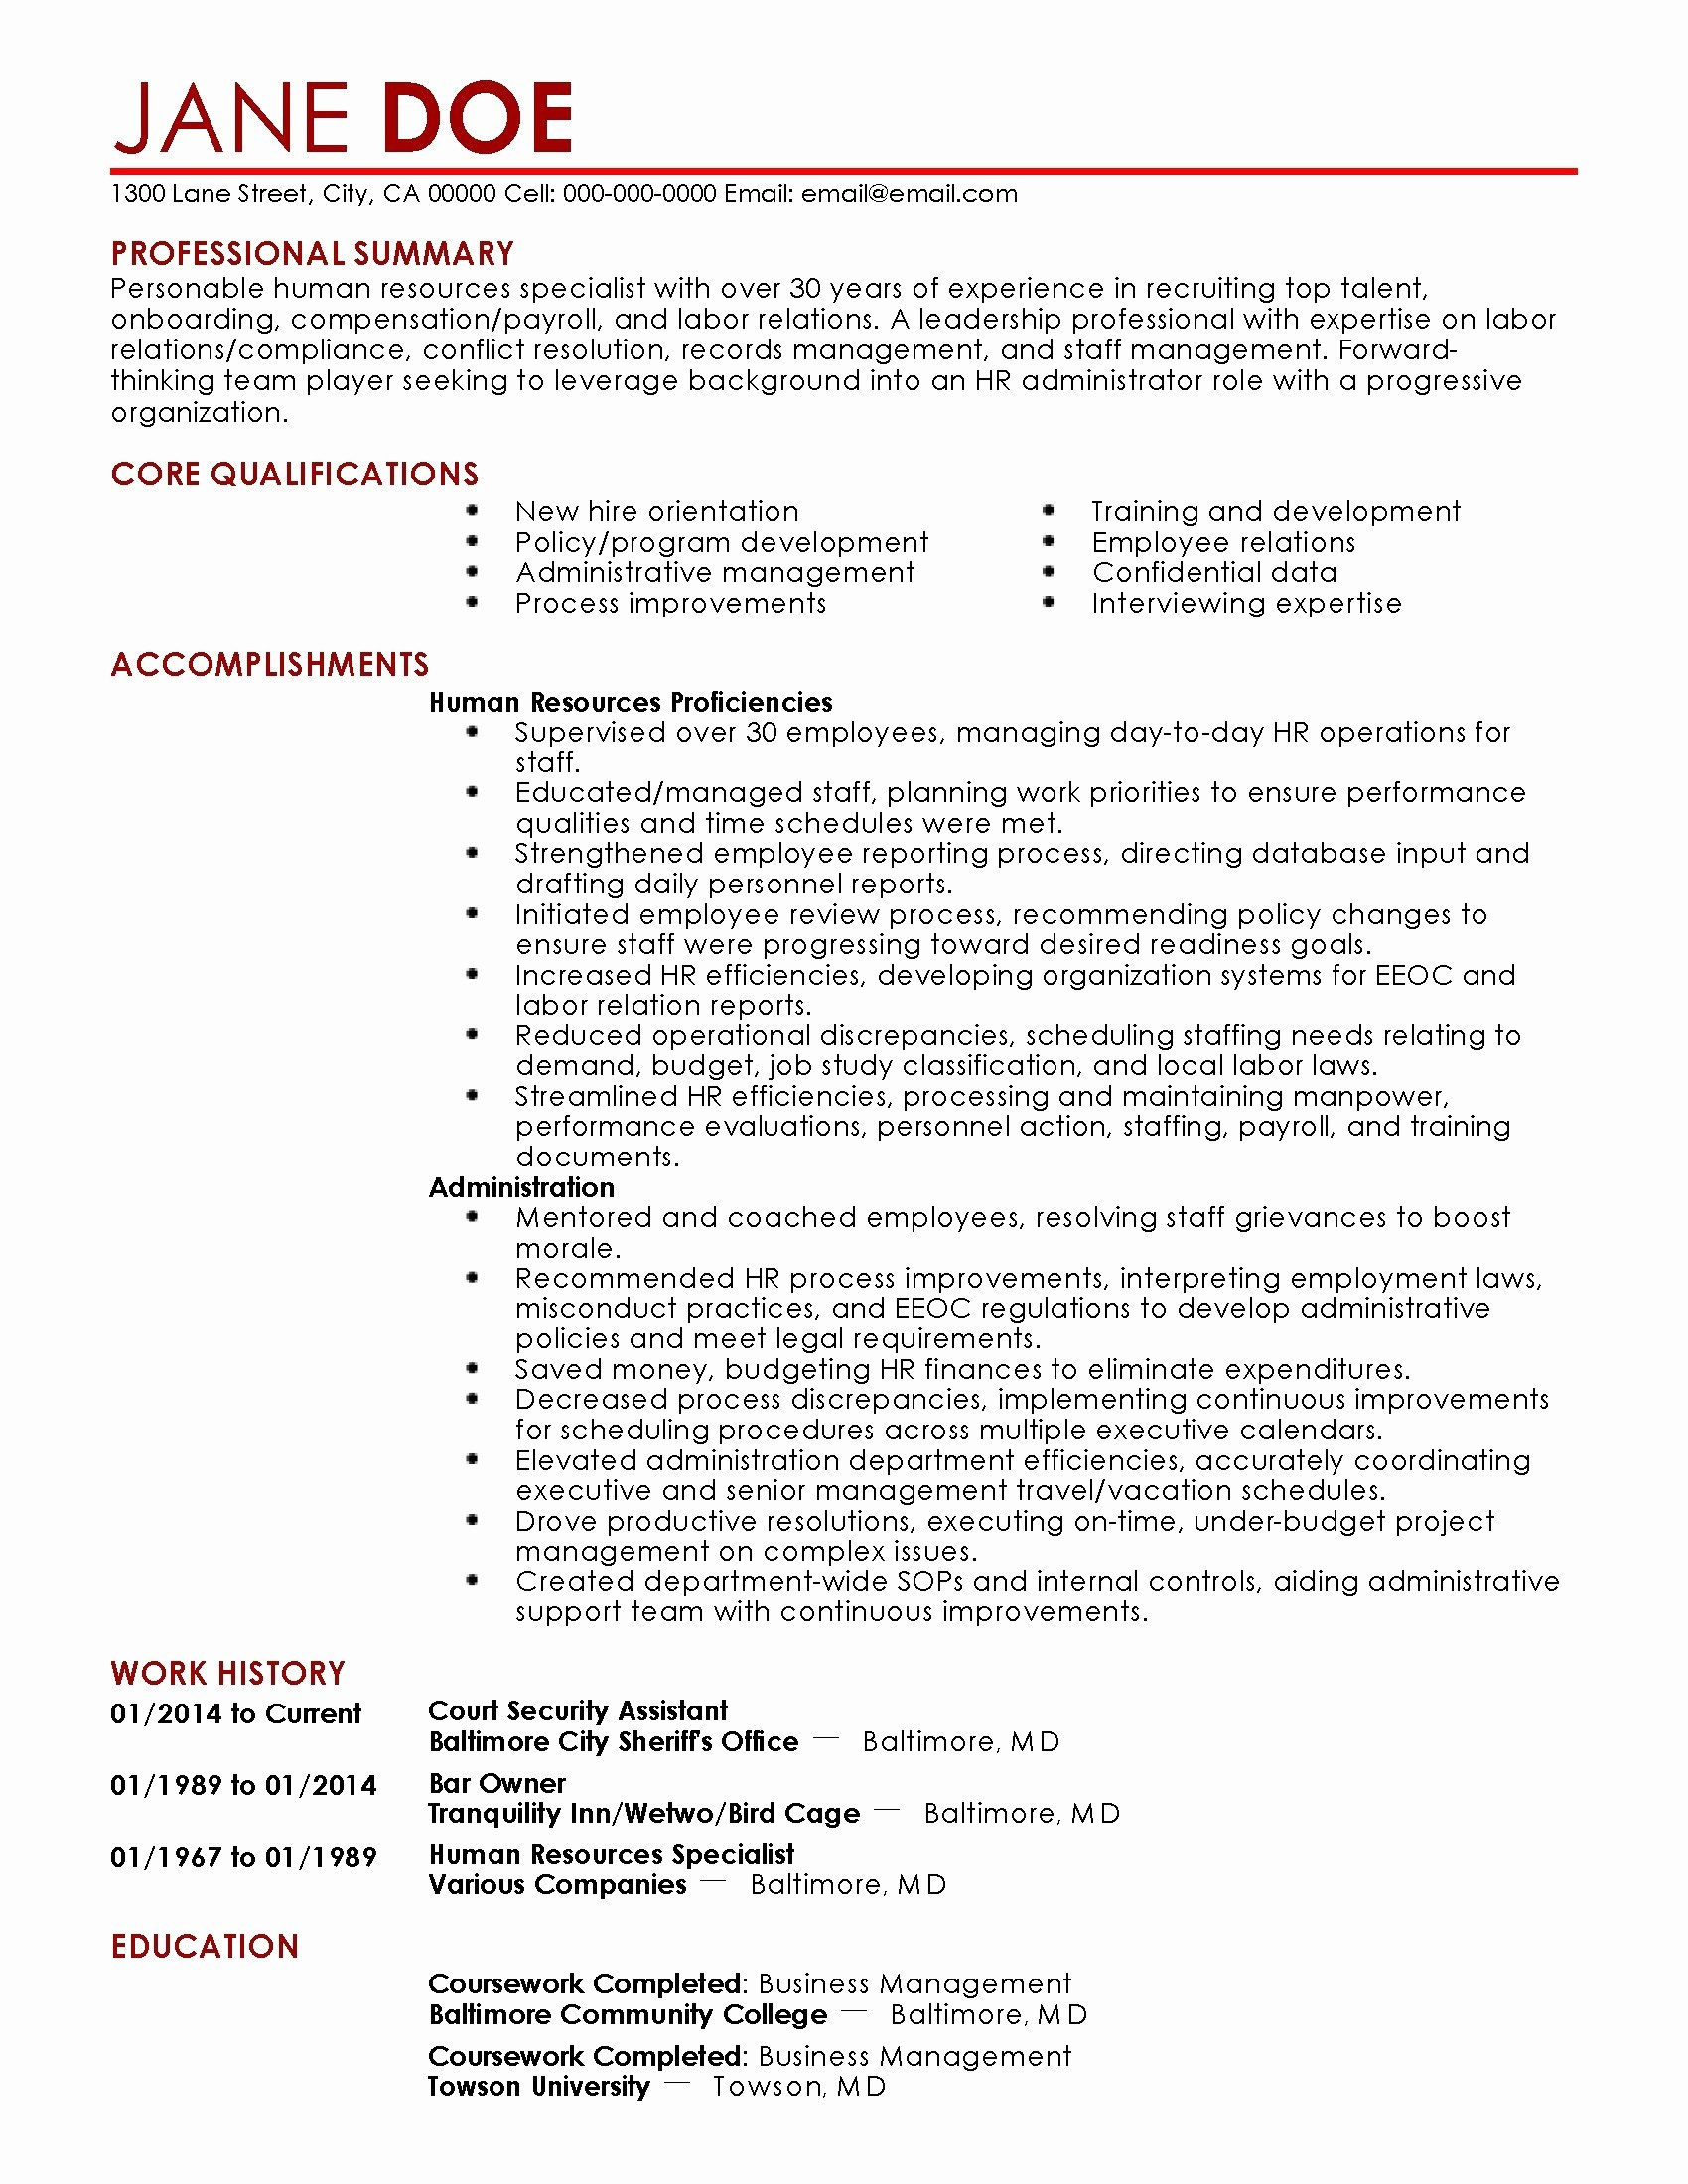 Healthcare Resume Template - Functional Resume Examples Fresh Medical assistant Resumes New